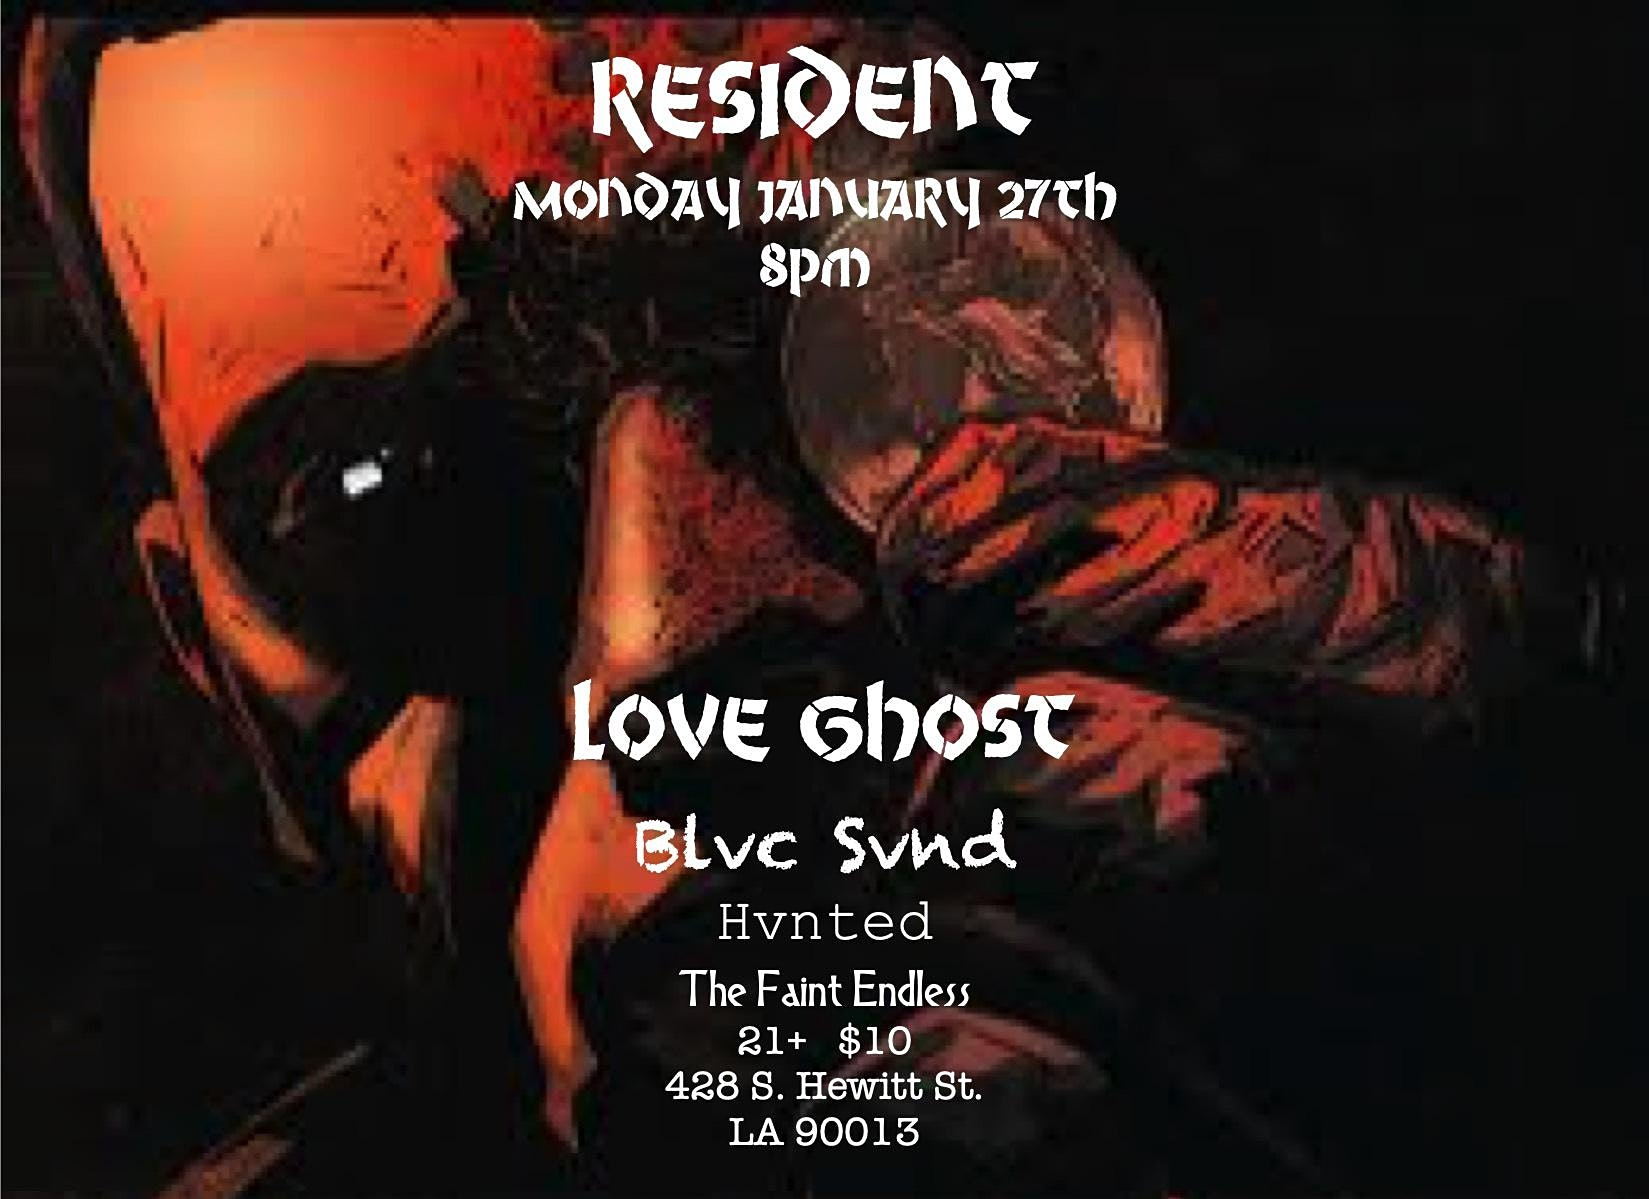 Love Ghost, Blvk Svnd, Hvnted & The Faint Endless